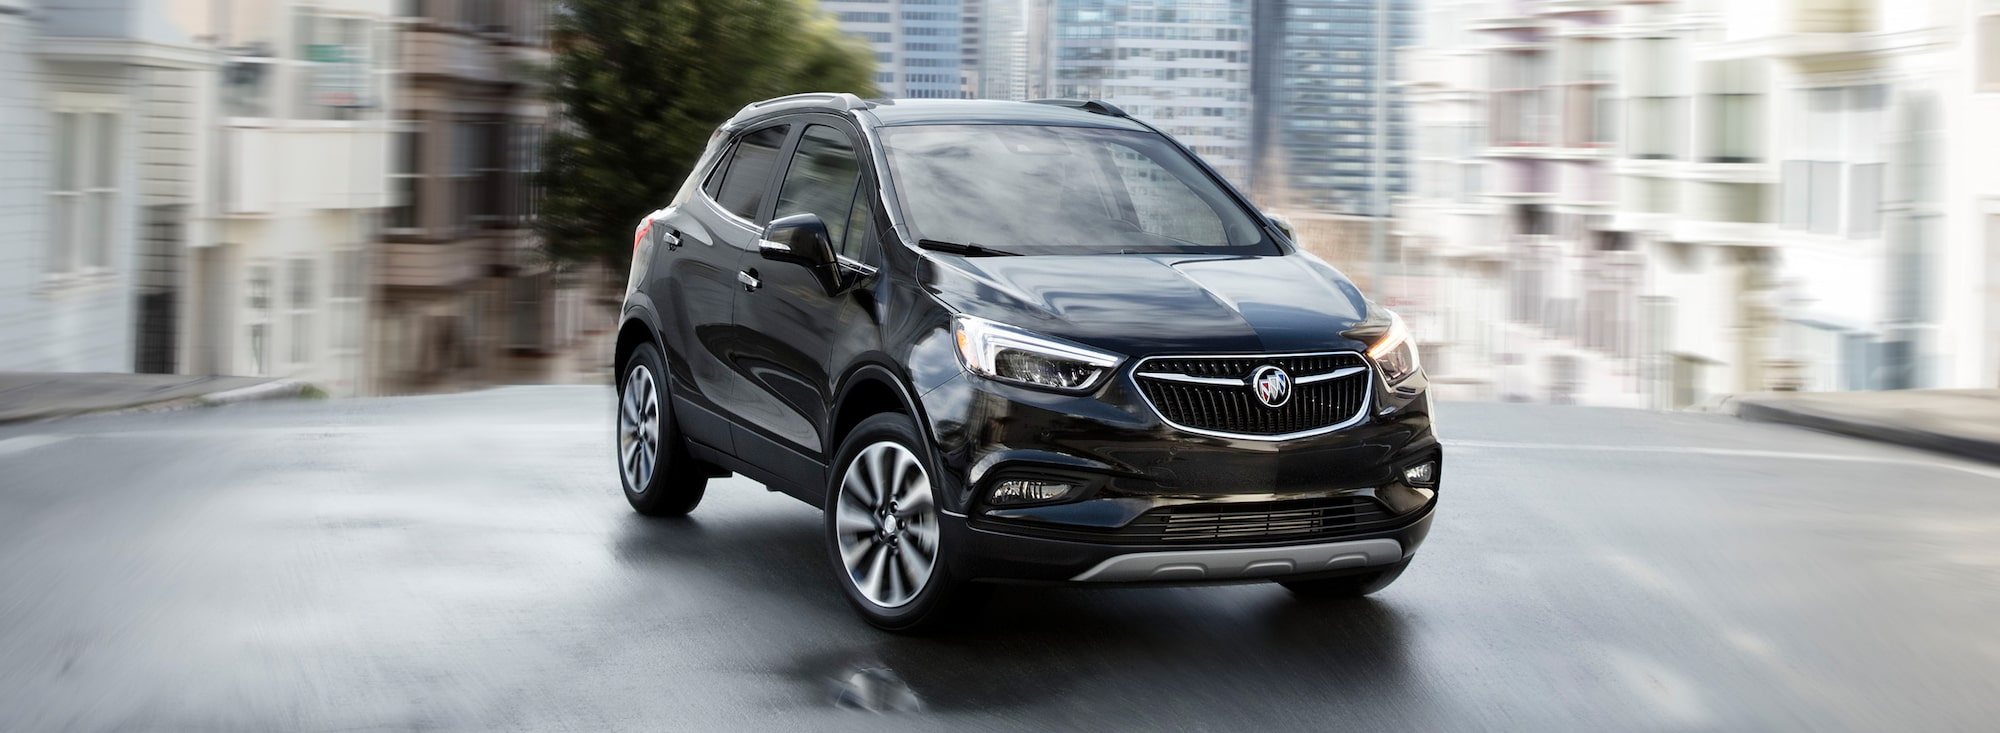 2019 BUICK ENCORE OWNERS MANUAL NEW TAKE OUT